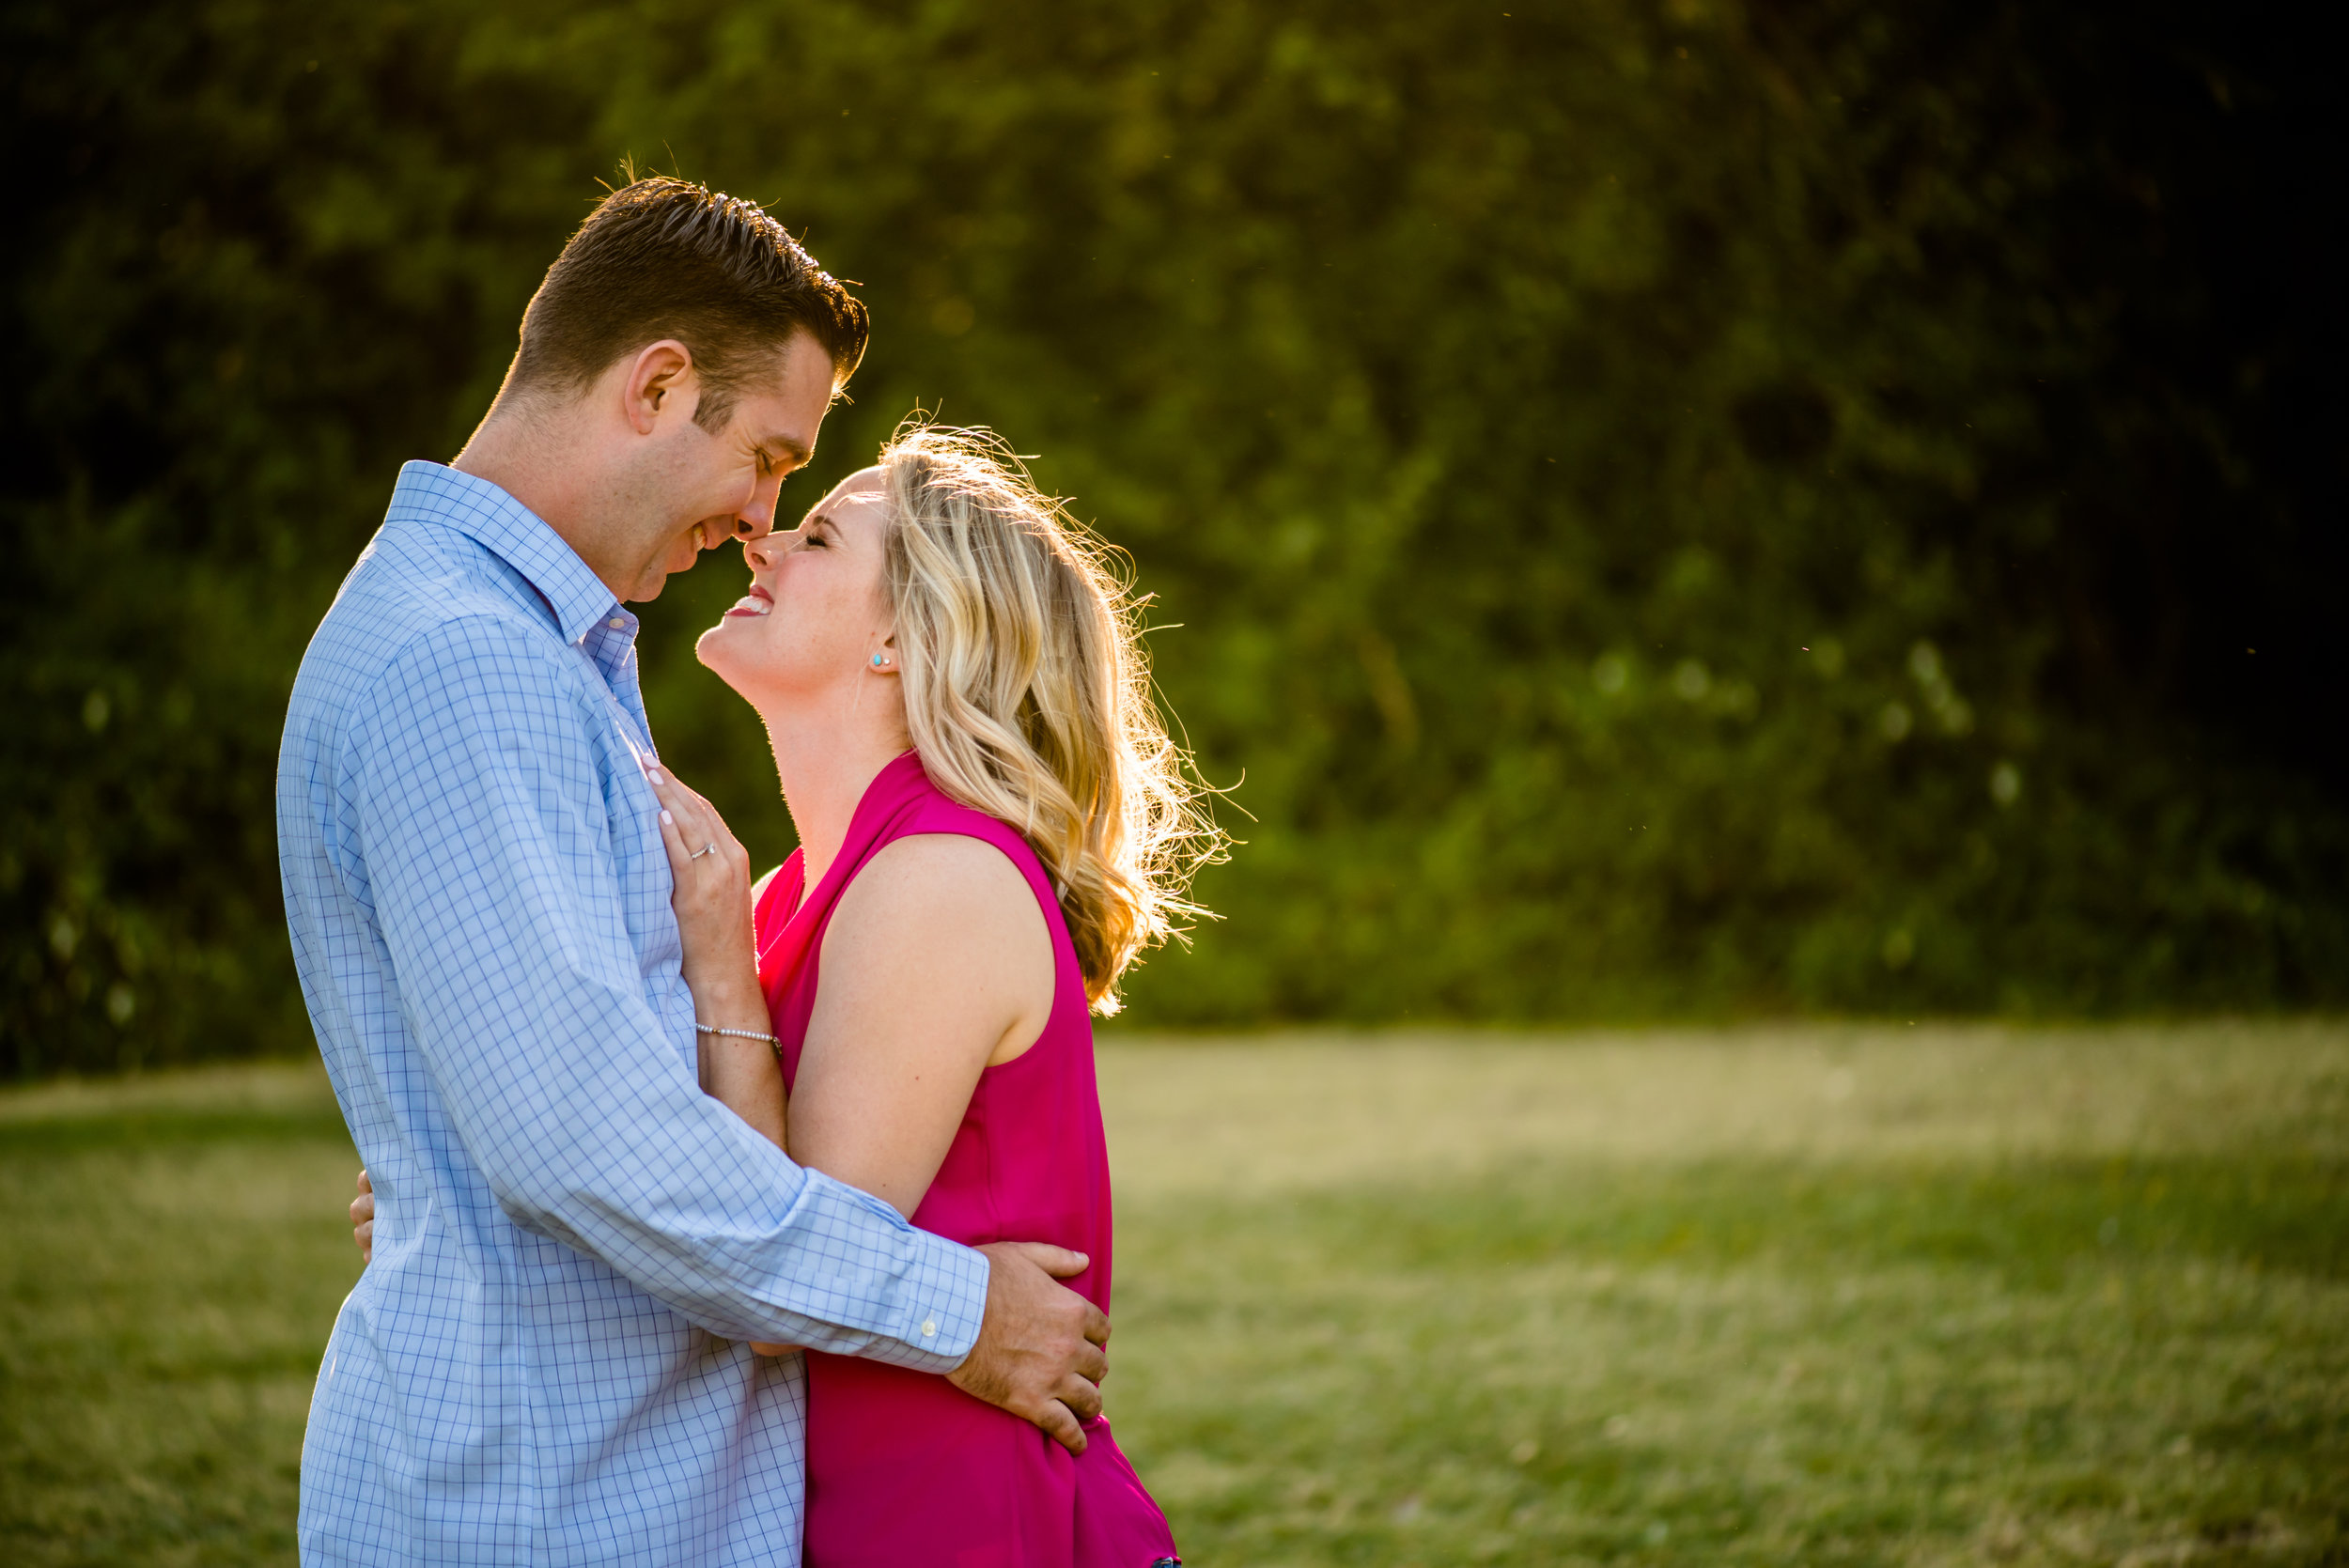 shannon-erich-001-sacramento-engagement-wedding-photographer-katherine-nicole-photography.JPG